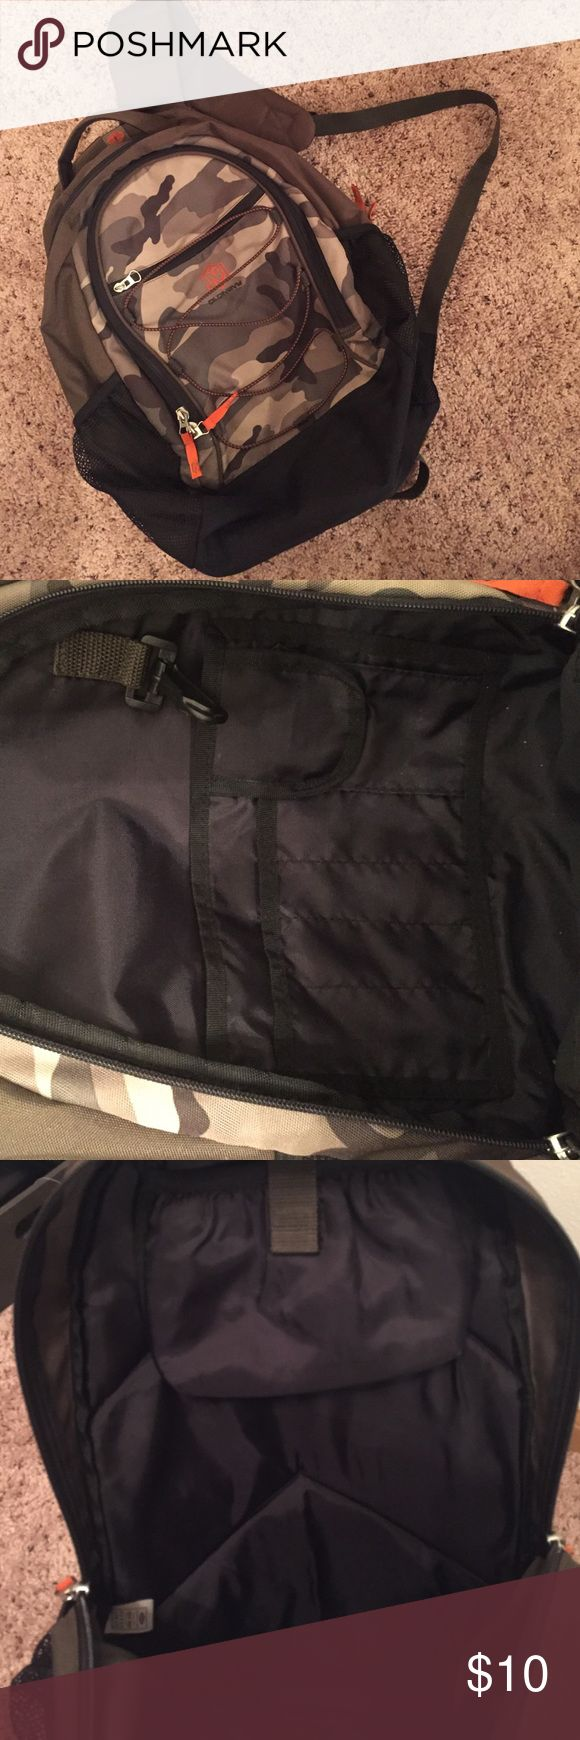 Old navy backpack 🎒 in good condition Old navy backpack 🎒 in good condition. This backpack has lots of pockets which I like. For any occasion. Price final. Bundle welcome. Old Navy Bags Backpacks